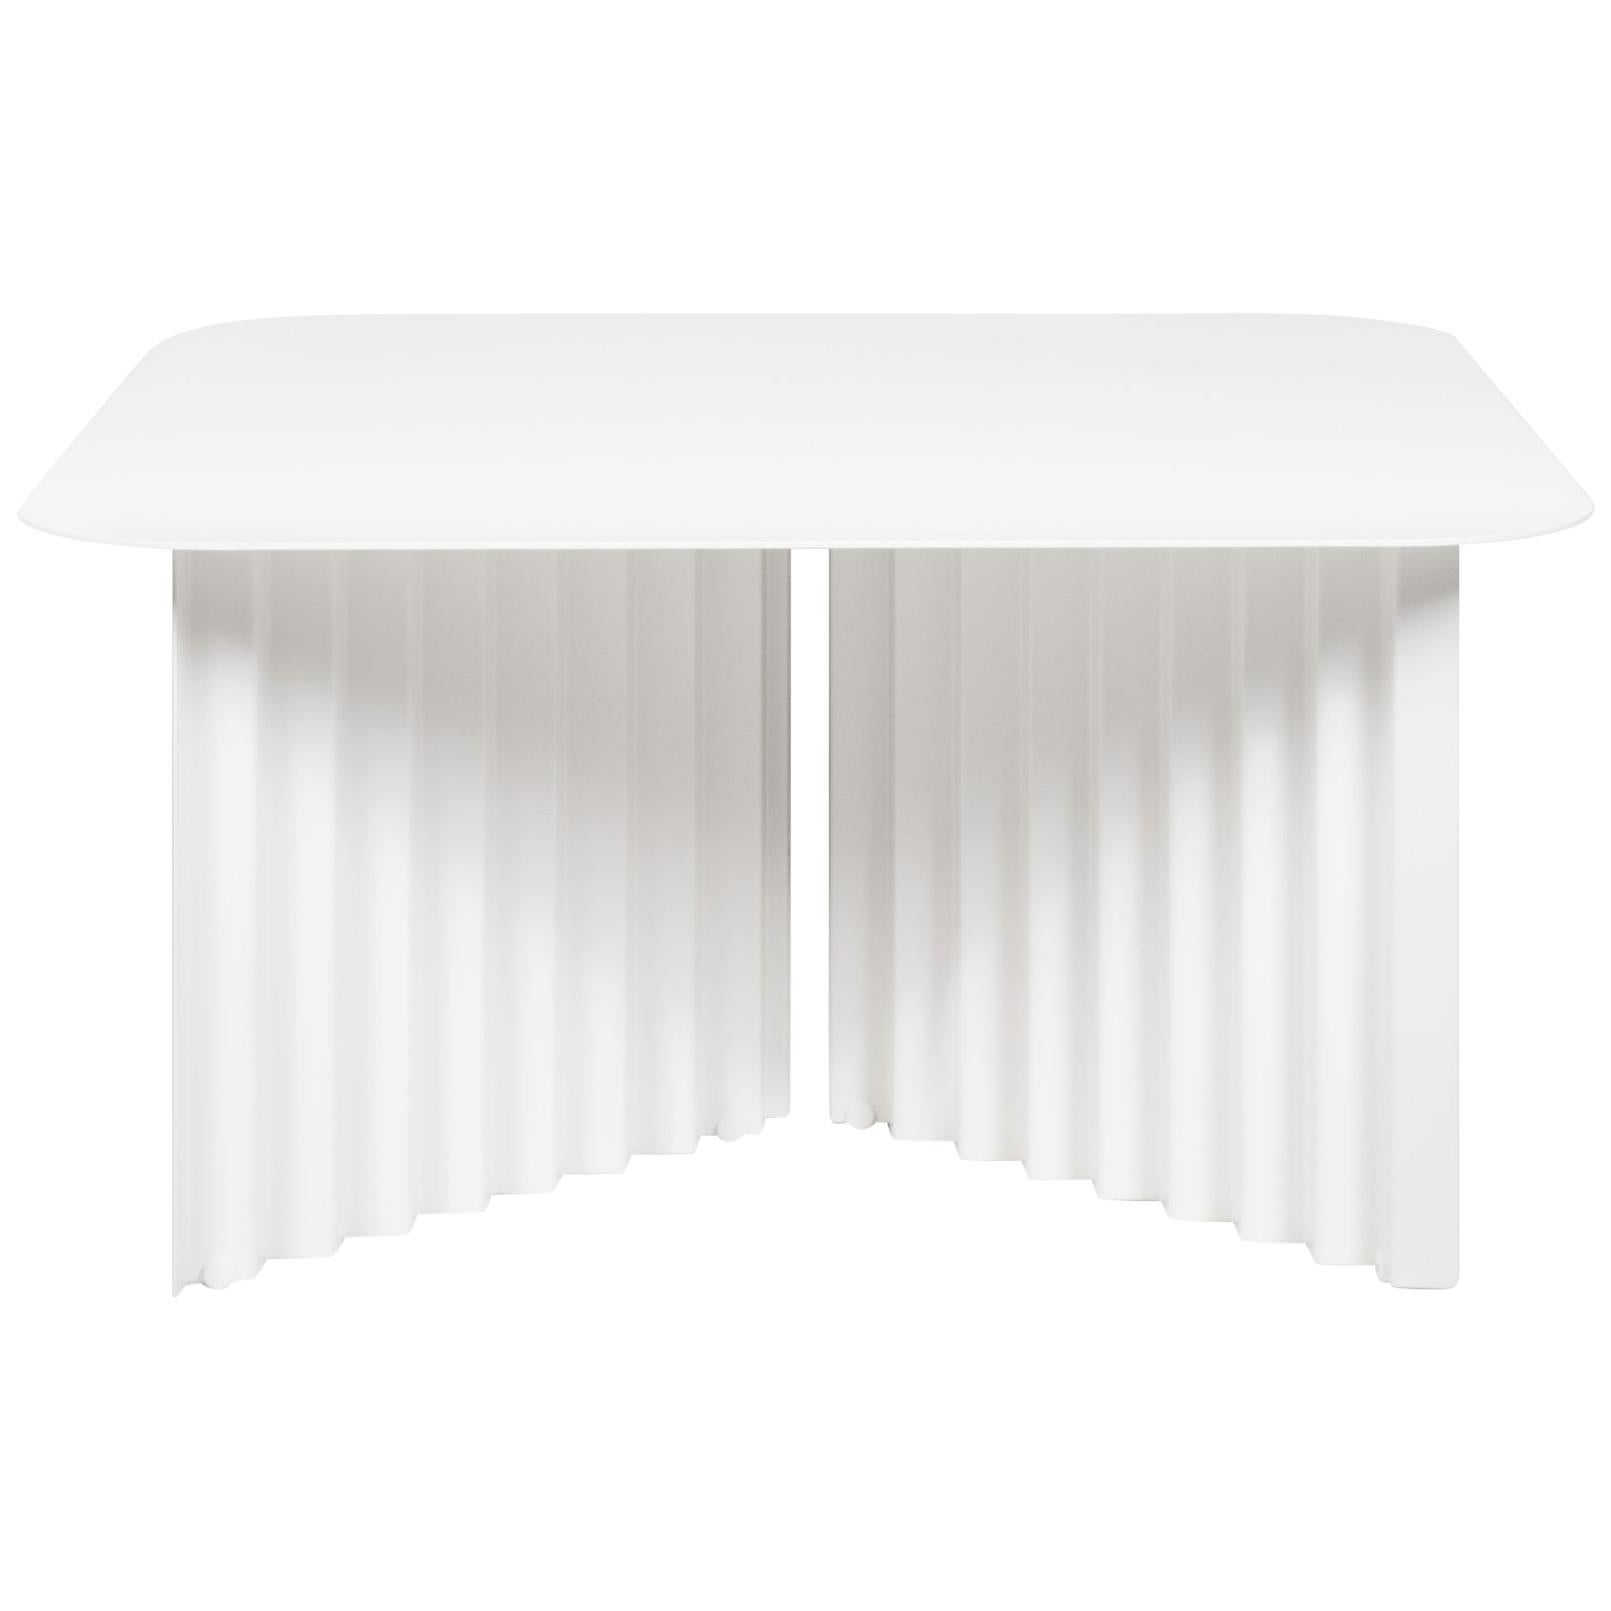 RS Barcelona Plec Medium Table in White Metal by A.P.O.